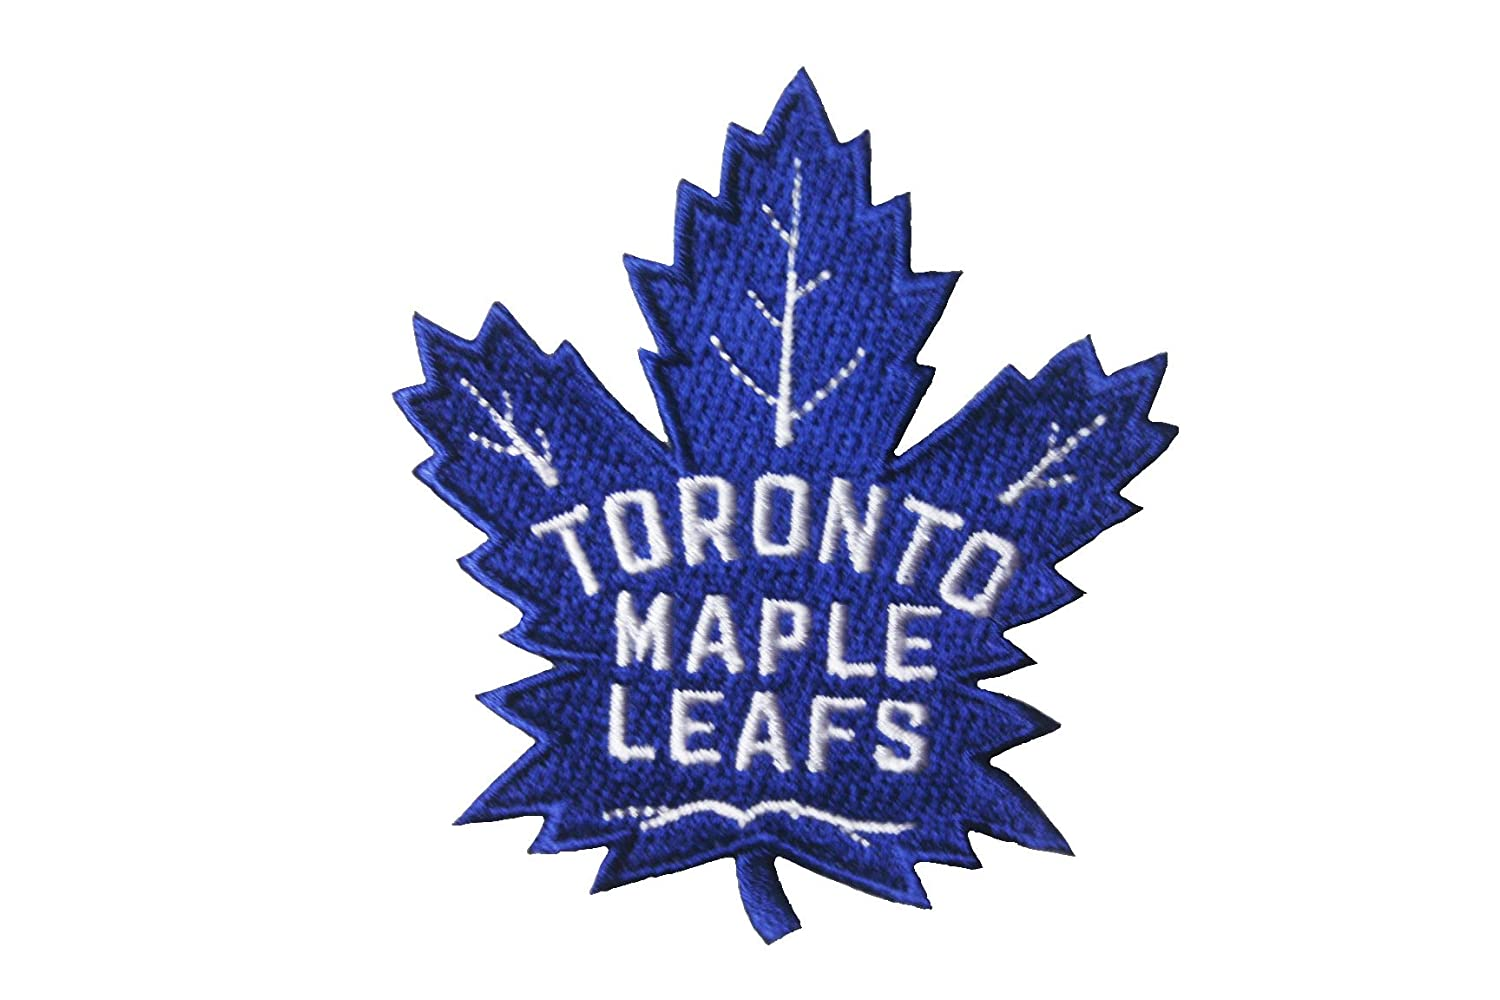 TORONTO MAPLE LEAFS NHL Hockey Blue ( NEW ) Logo Iron on Patch Crest Badge ... 2.75 X 3 Inch ... New SUPERDAVES SUPERSTORE